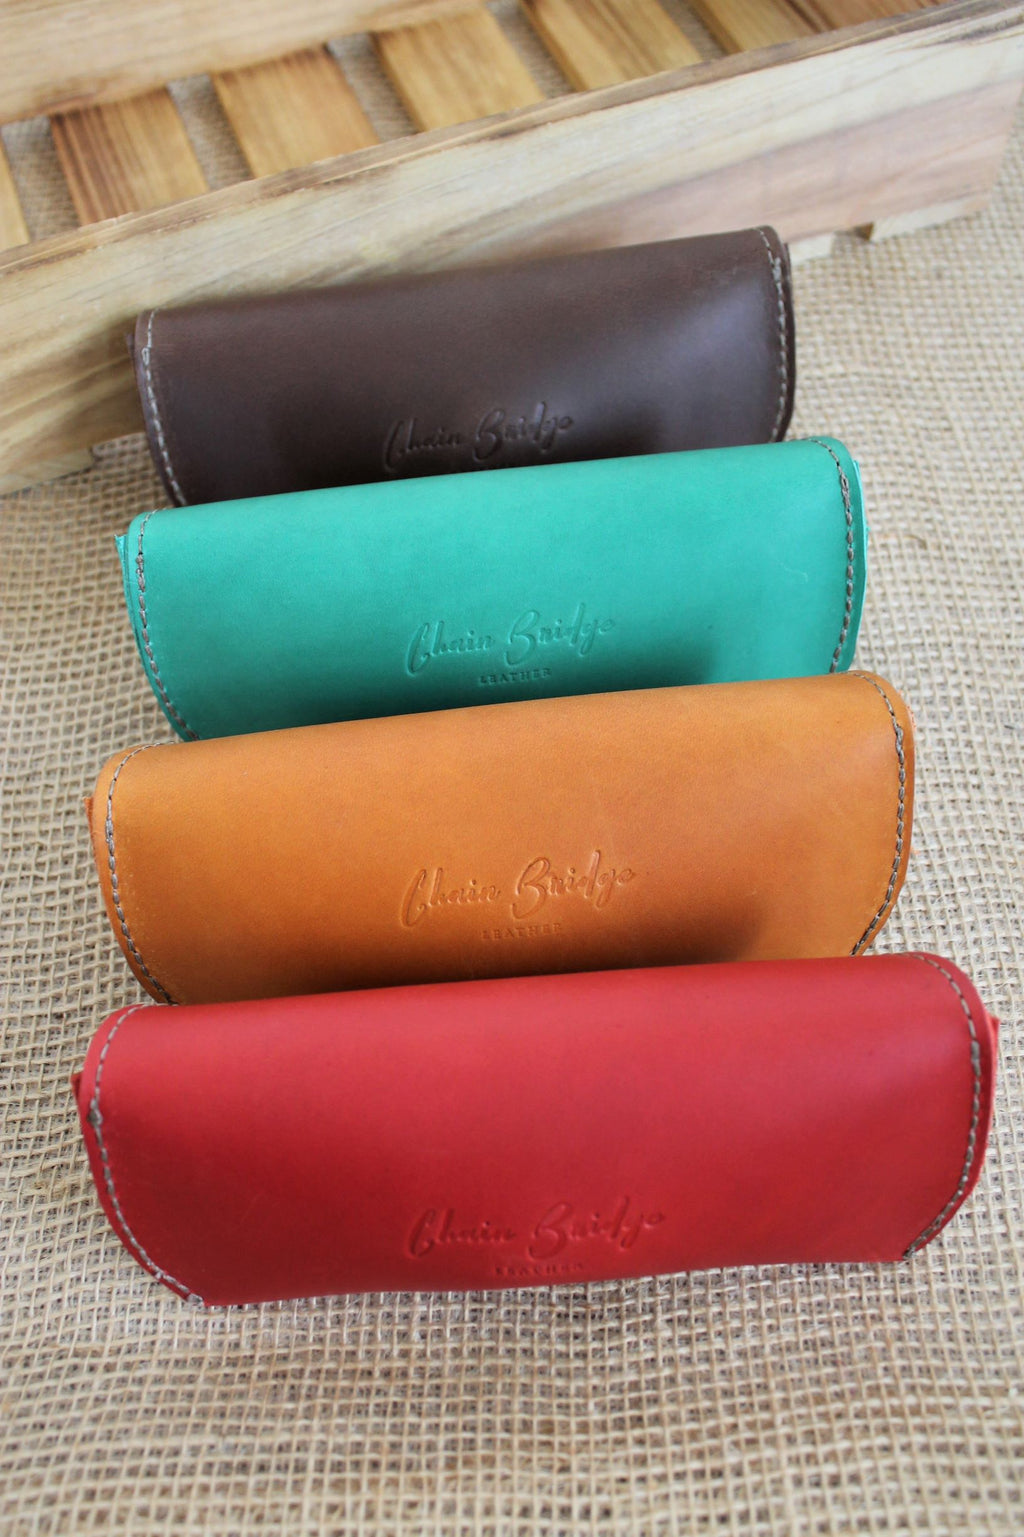 Monogrammed leather sunglass case glasses holder